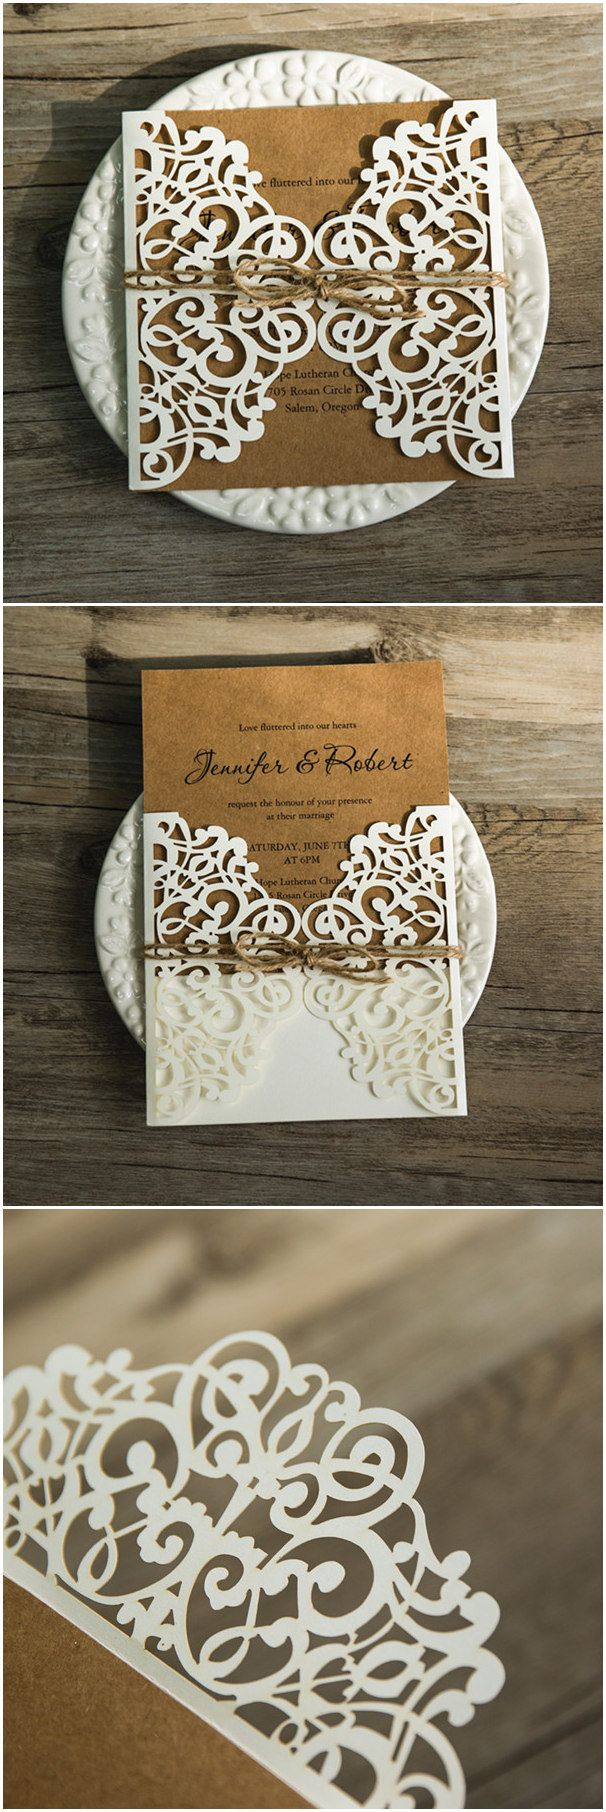 chic rustic burlap laser cut wedding invitations for country wedding ideas